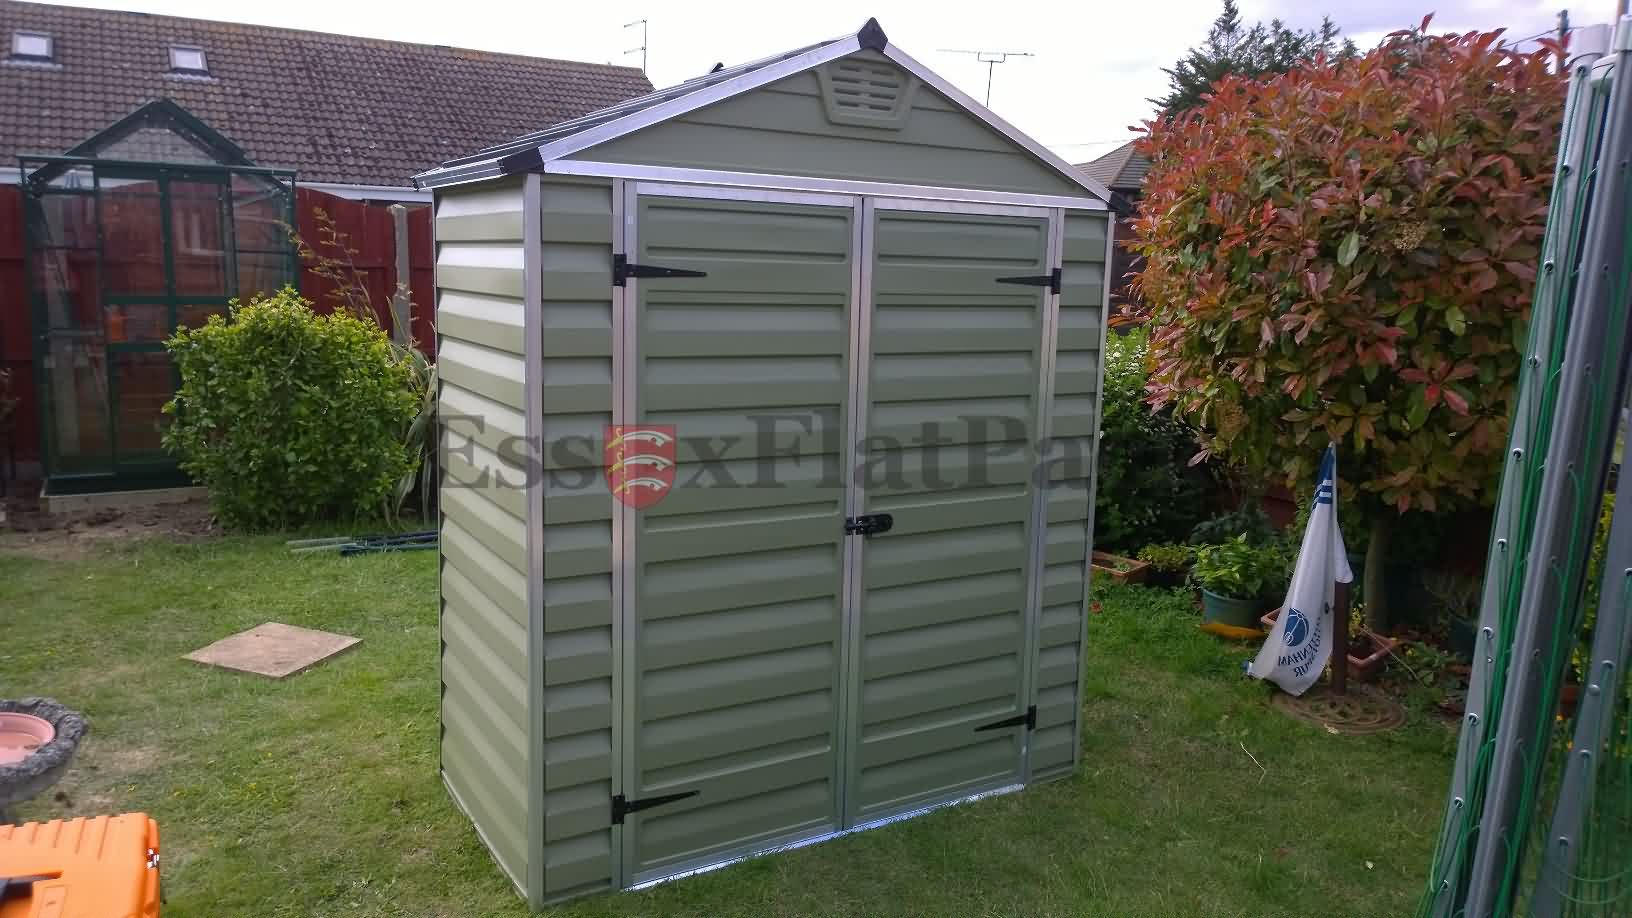 shed-installation-and-assembly-service-30.jpg